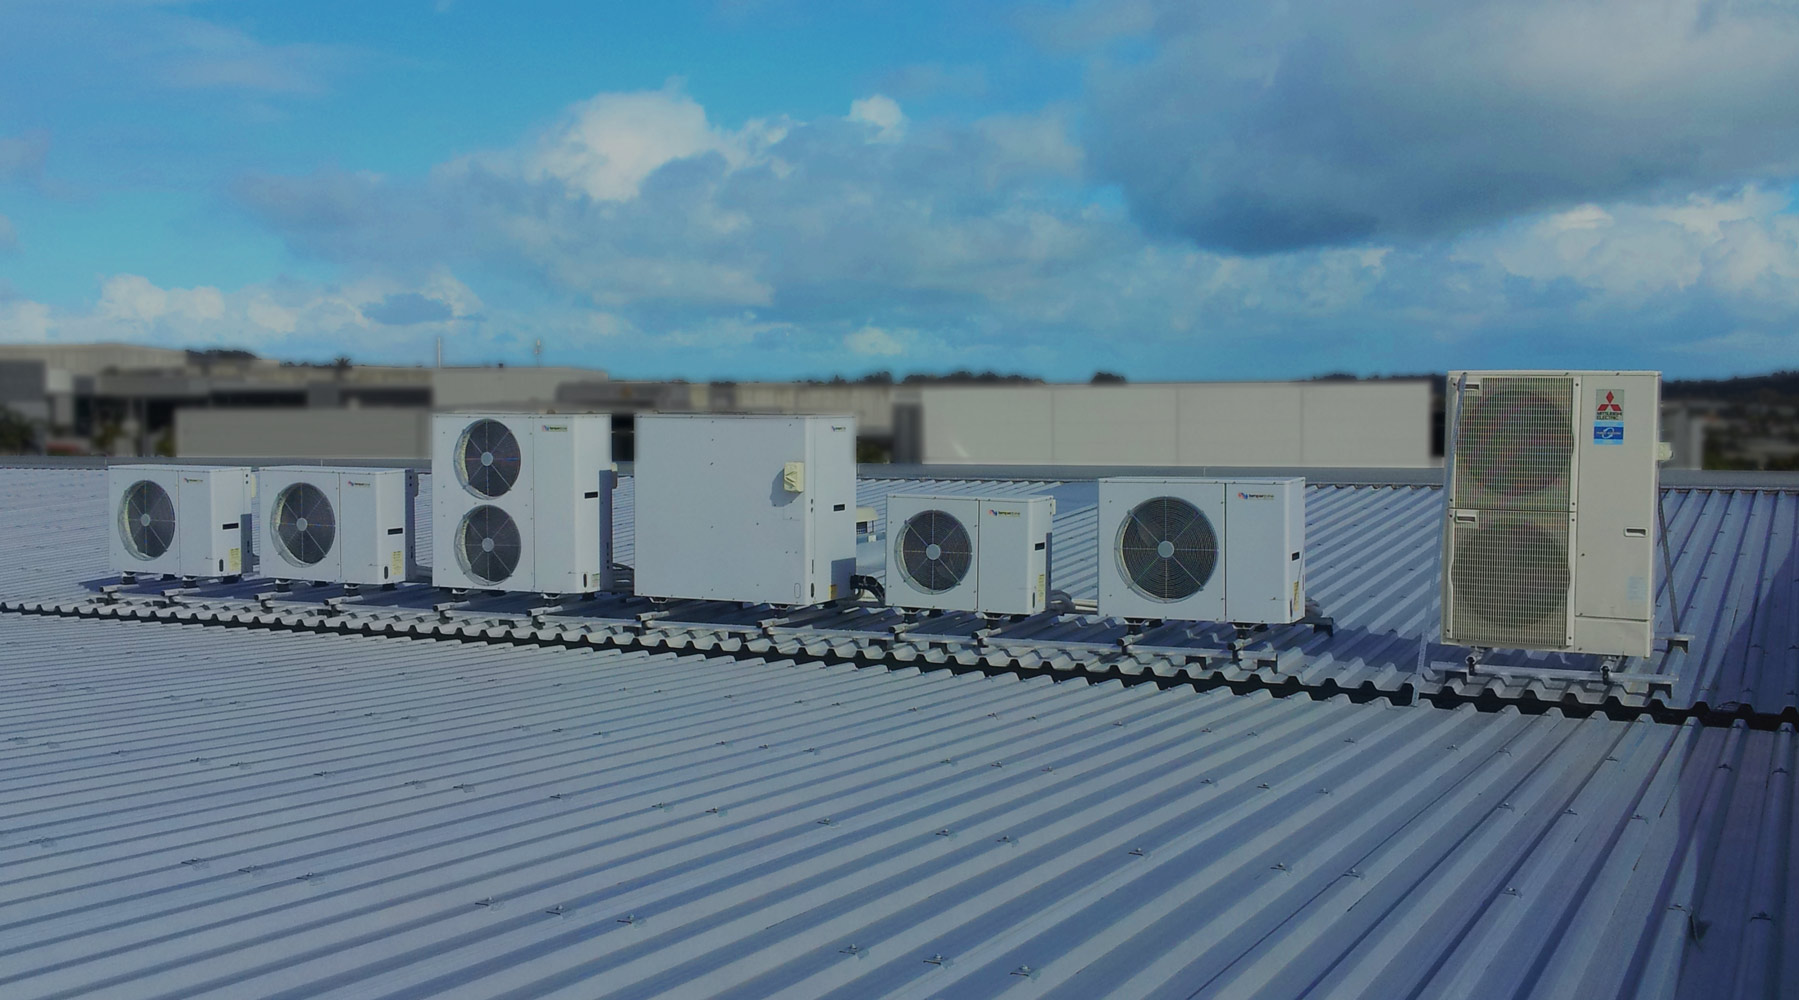 #357796 Commercial Refrigeration Equipment. Best 7663 Air Conditioner Installation Auckland photos with 1799x1000 px on helpvideos.info - Air Conditioners, Air Coolers and more